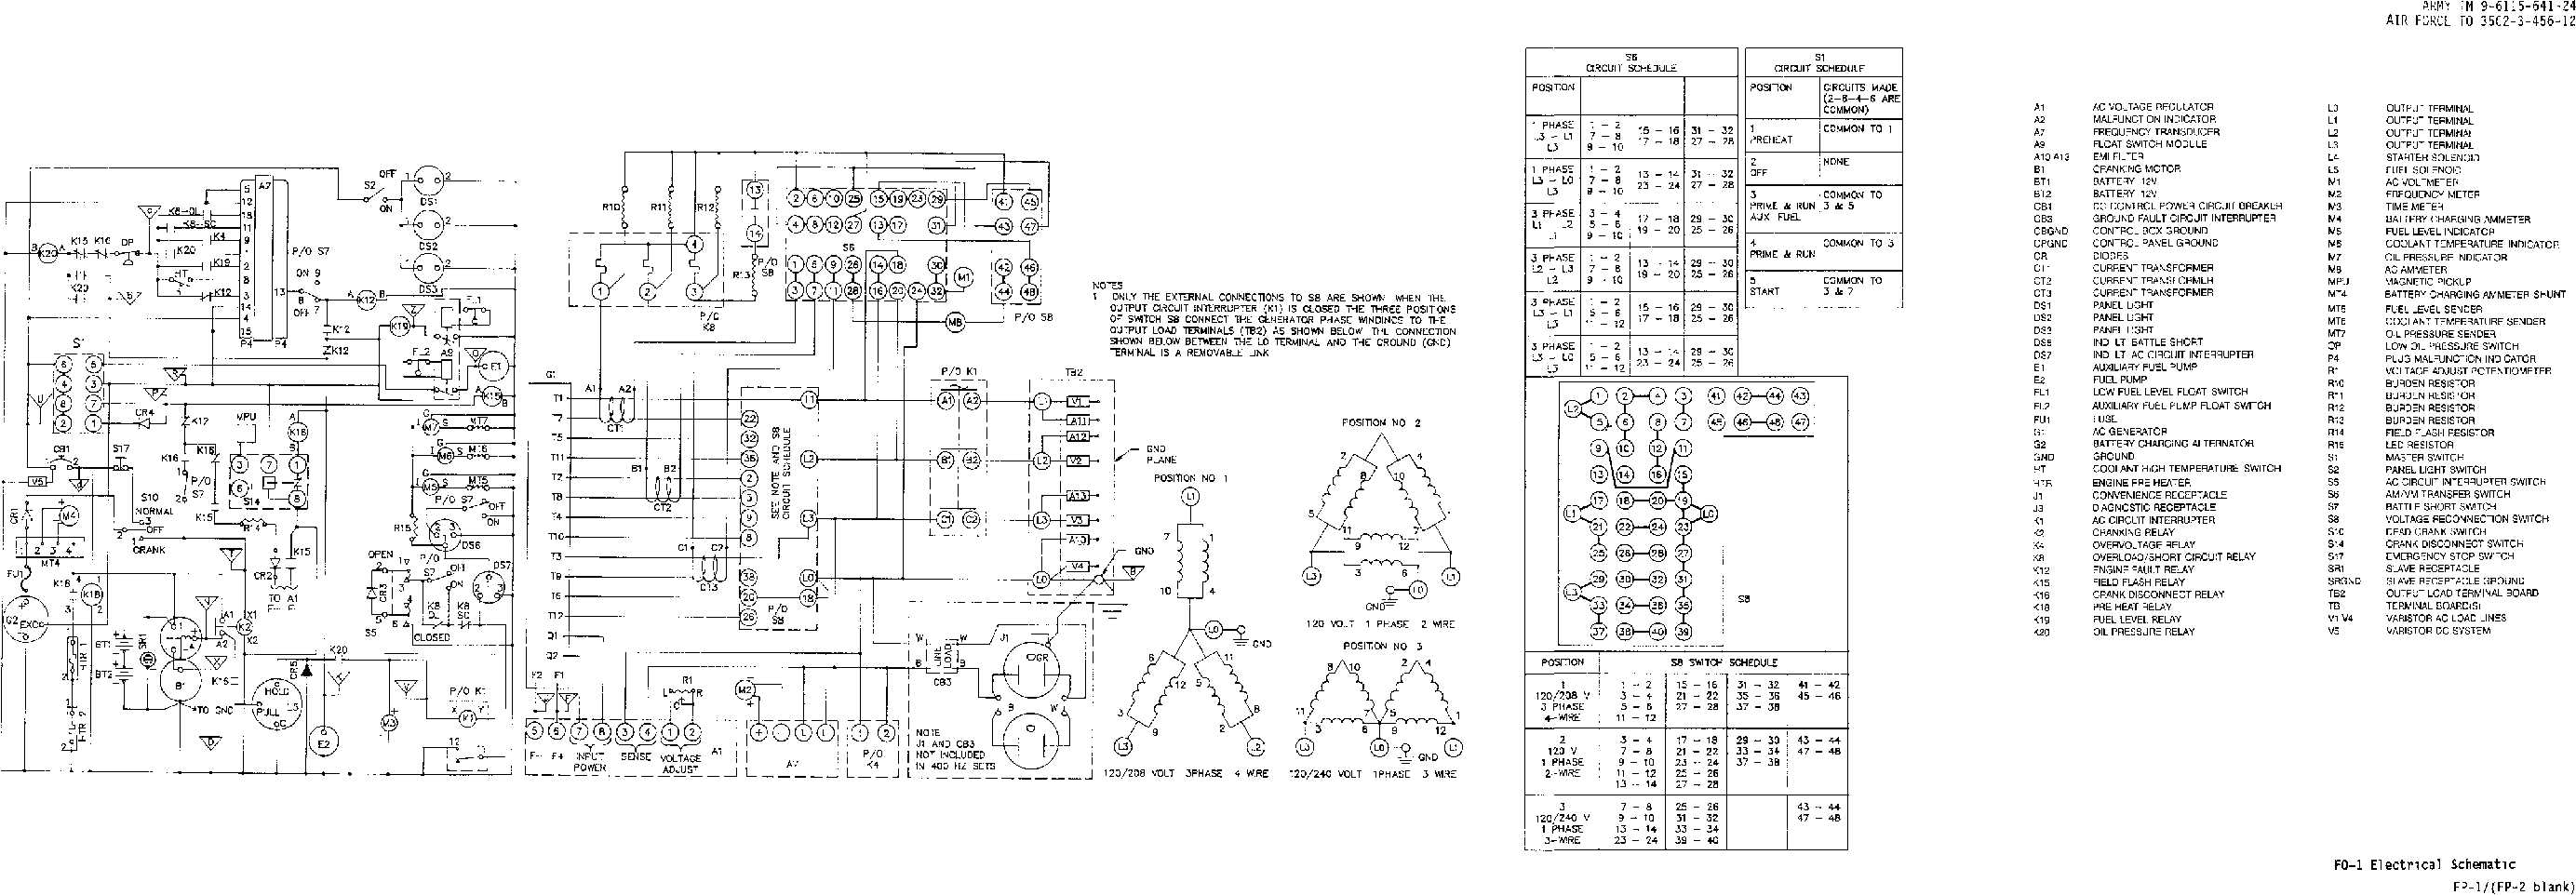 fo-1. electrical schematic